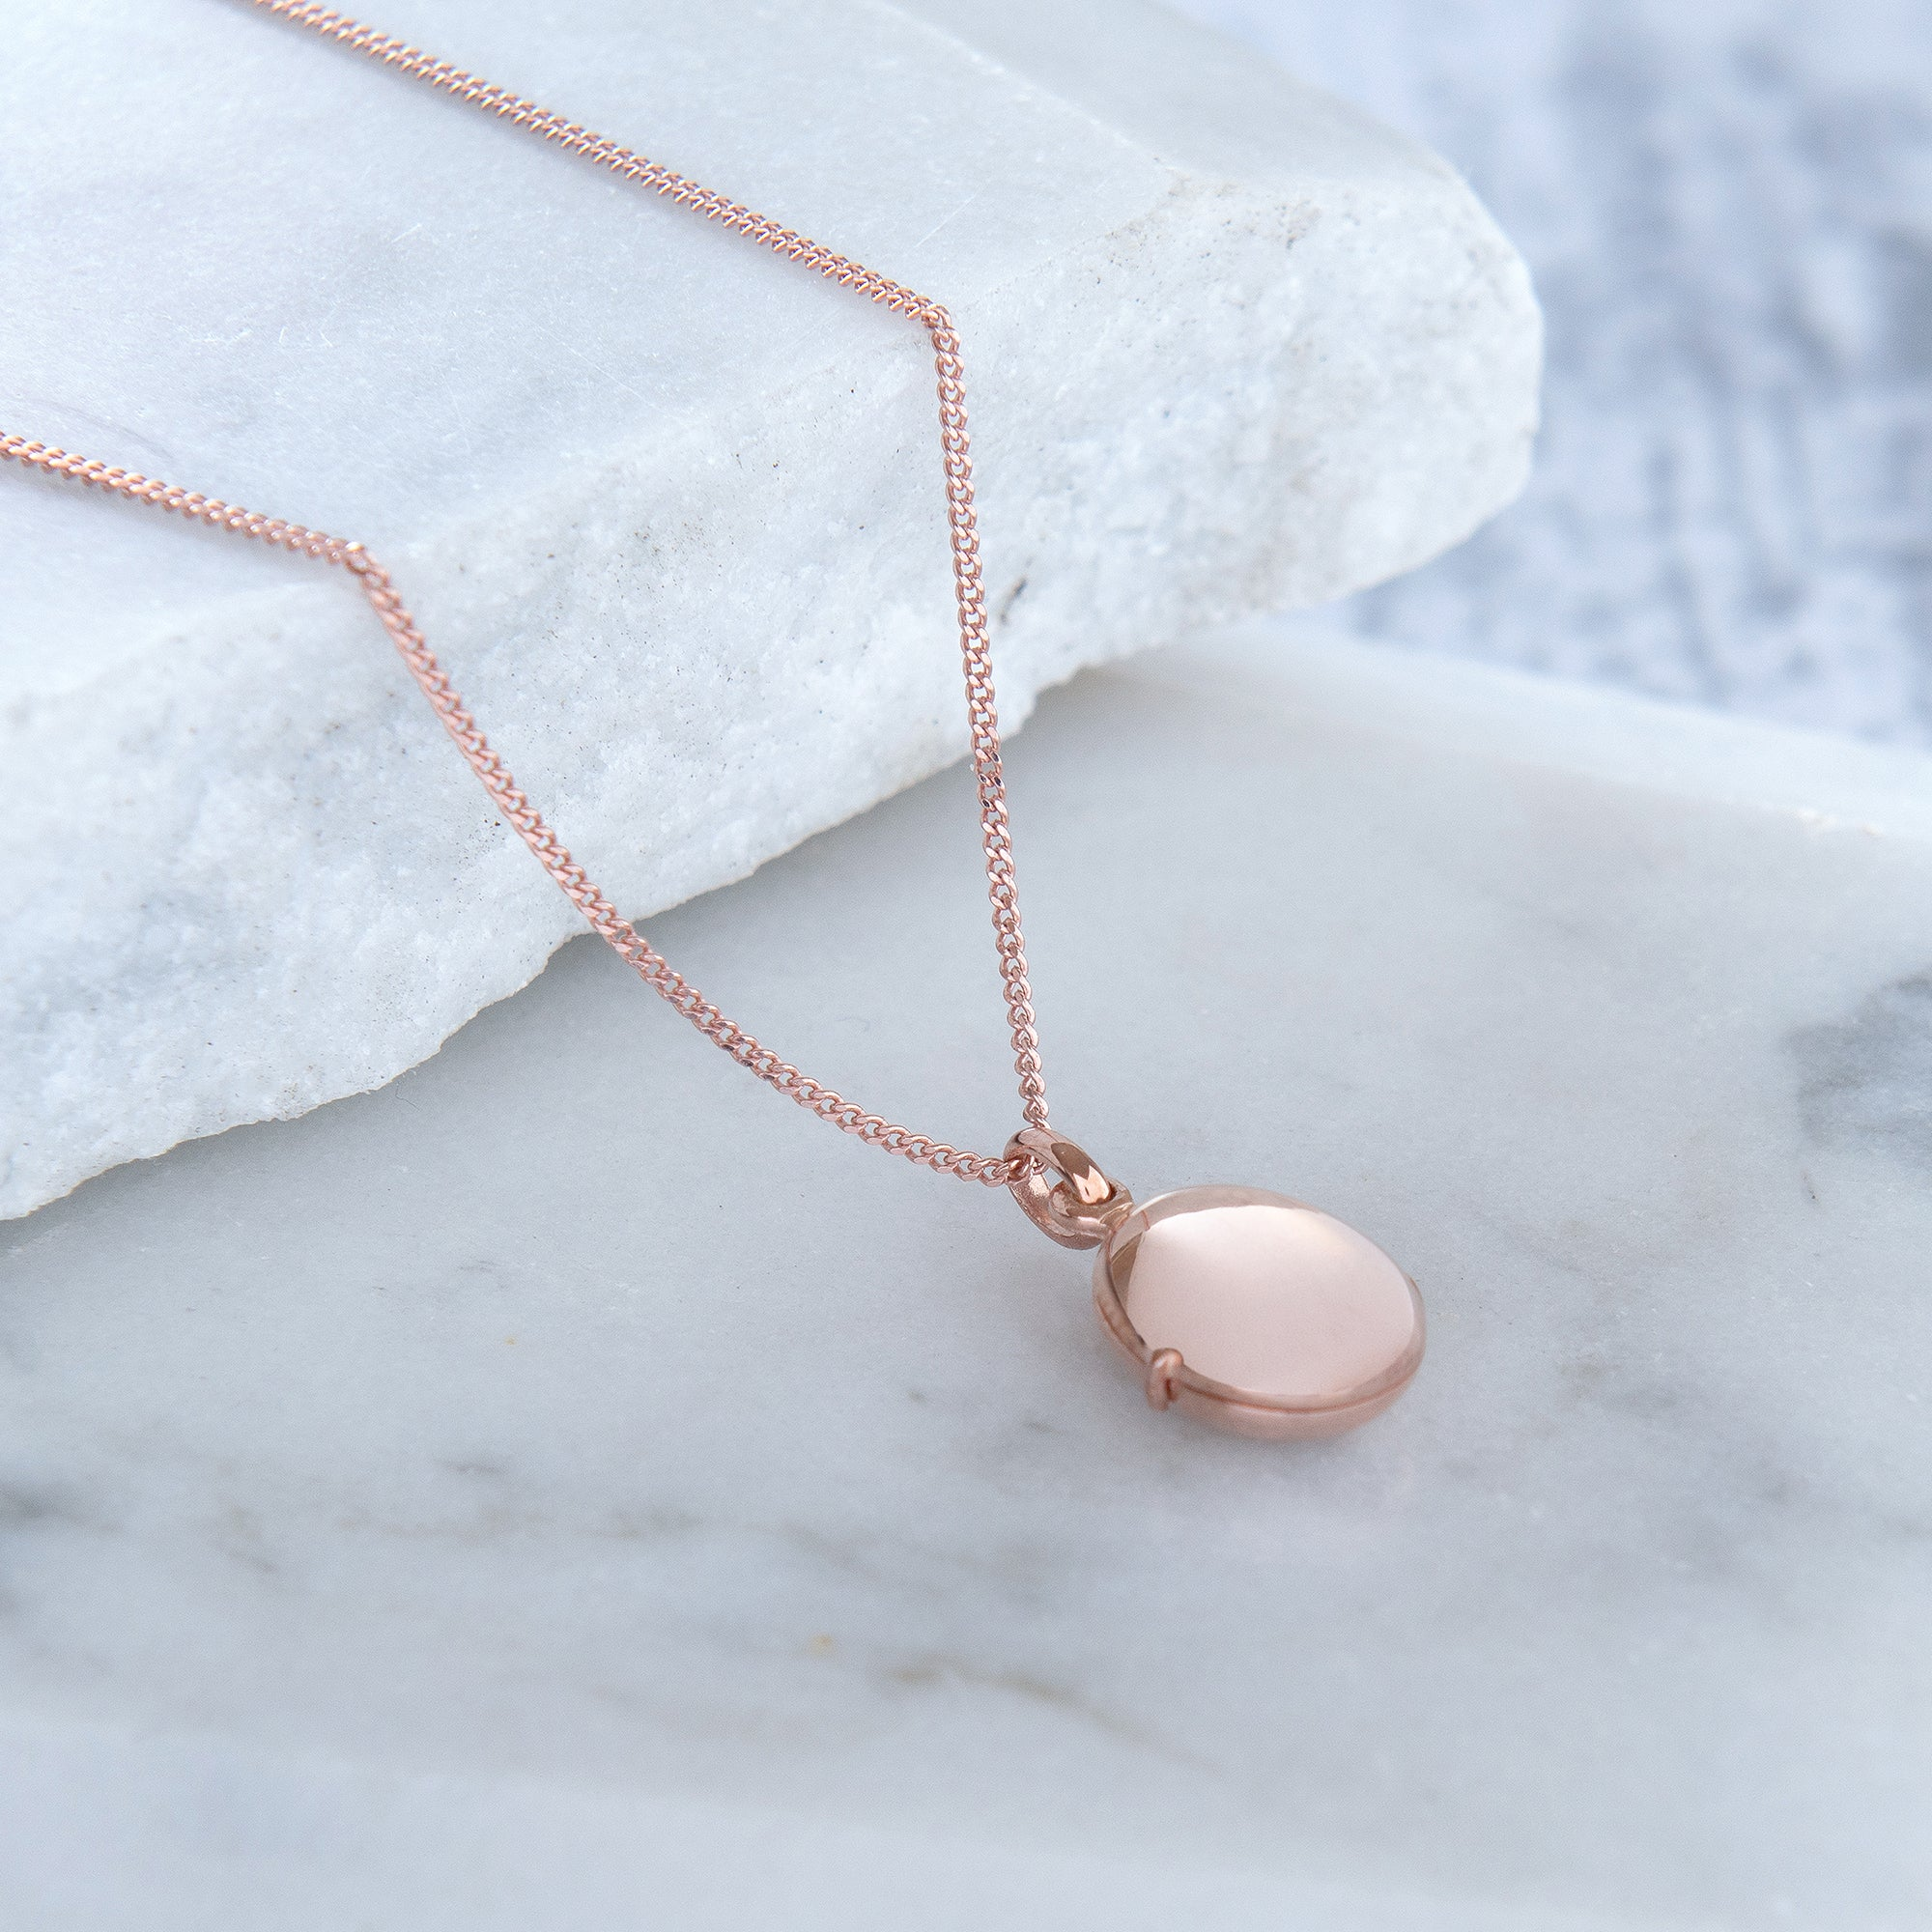 Pebble Locket Necklace Rose Gold Vermeil